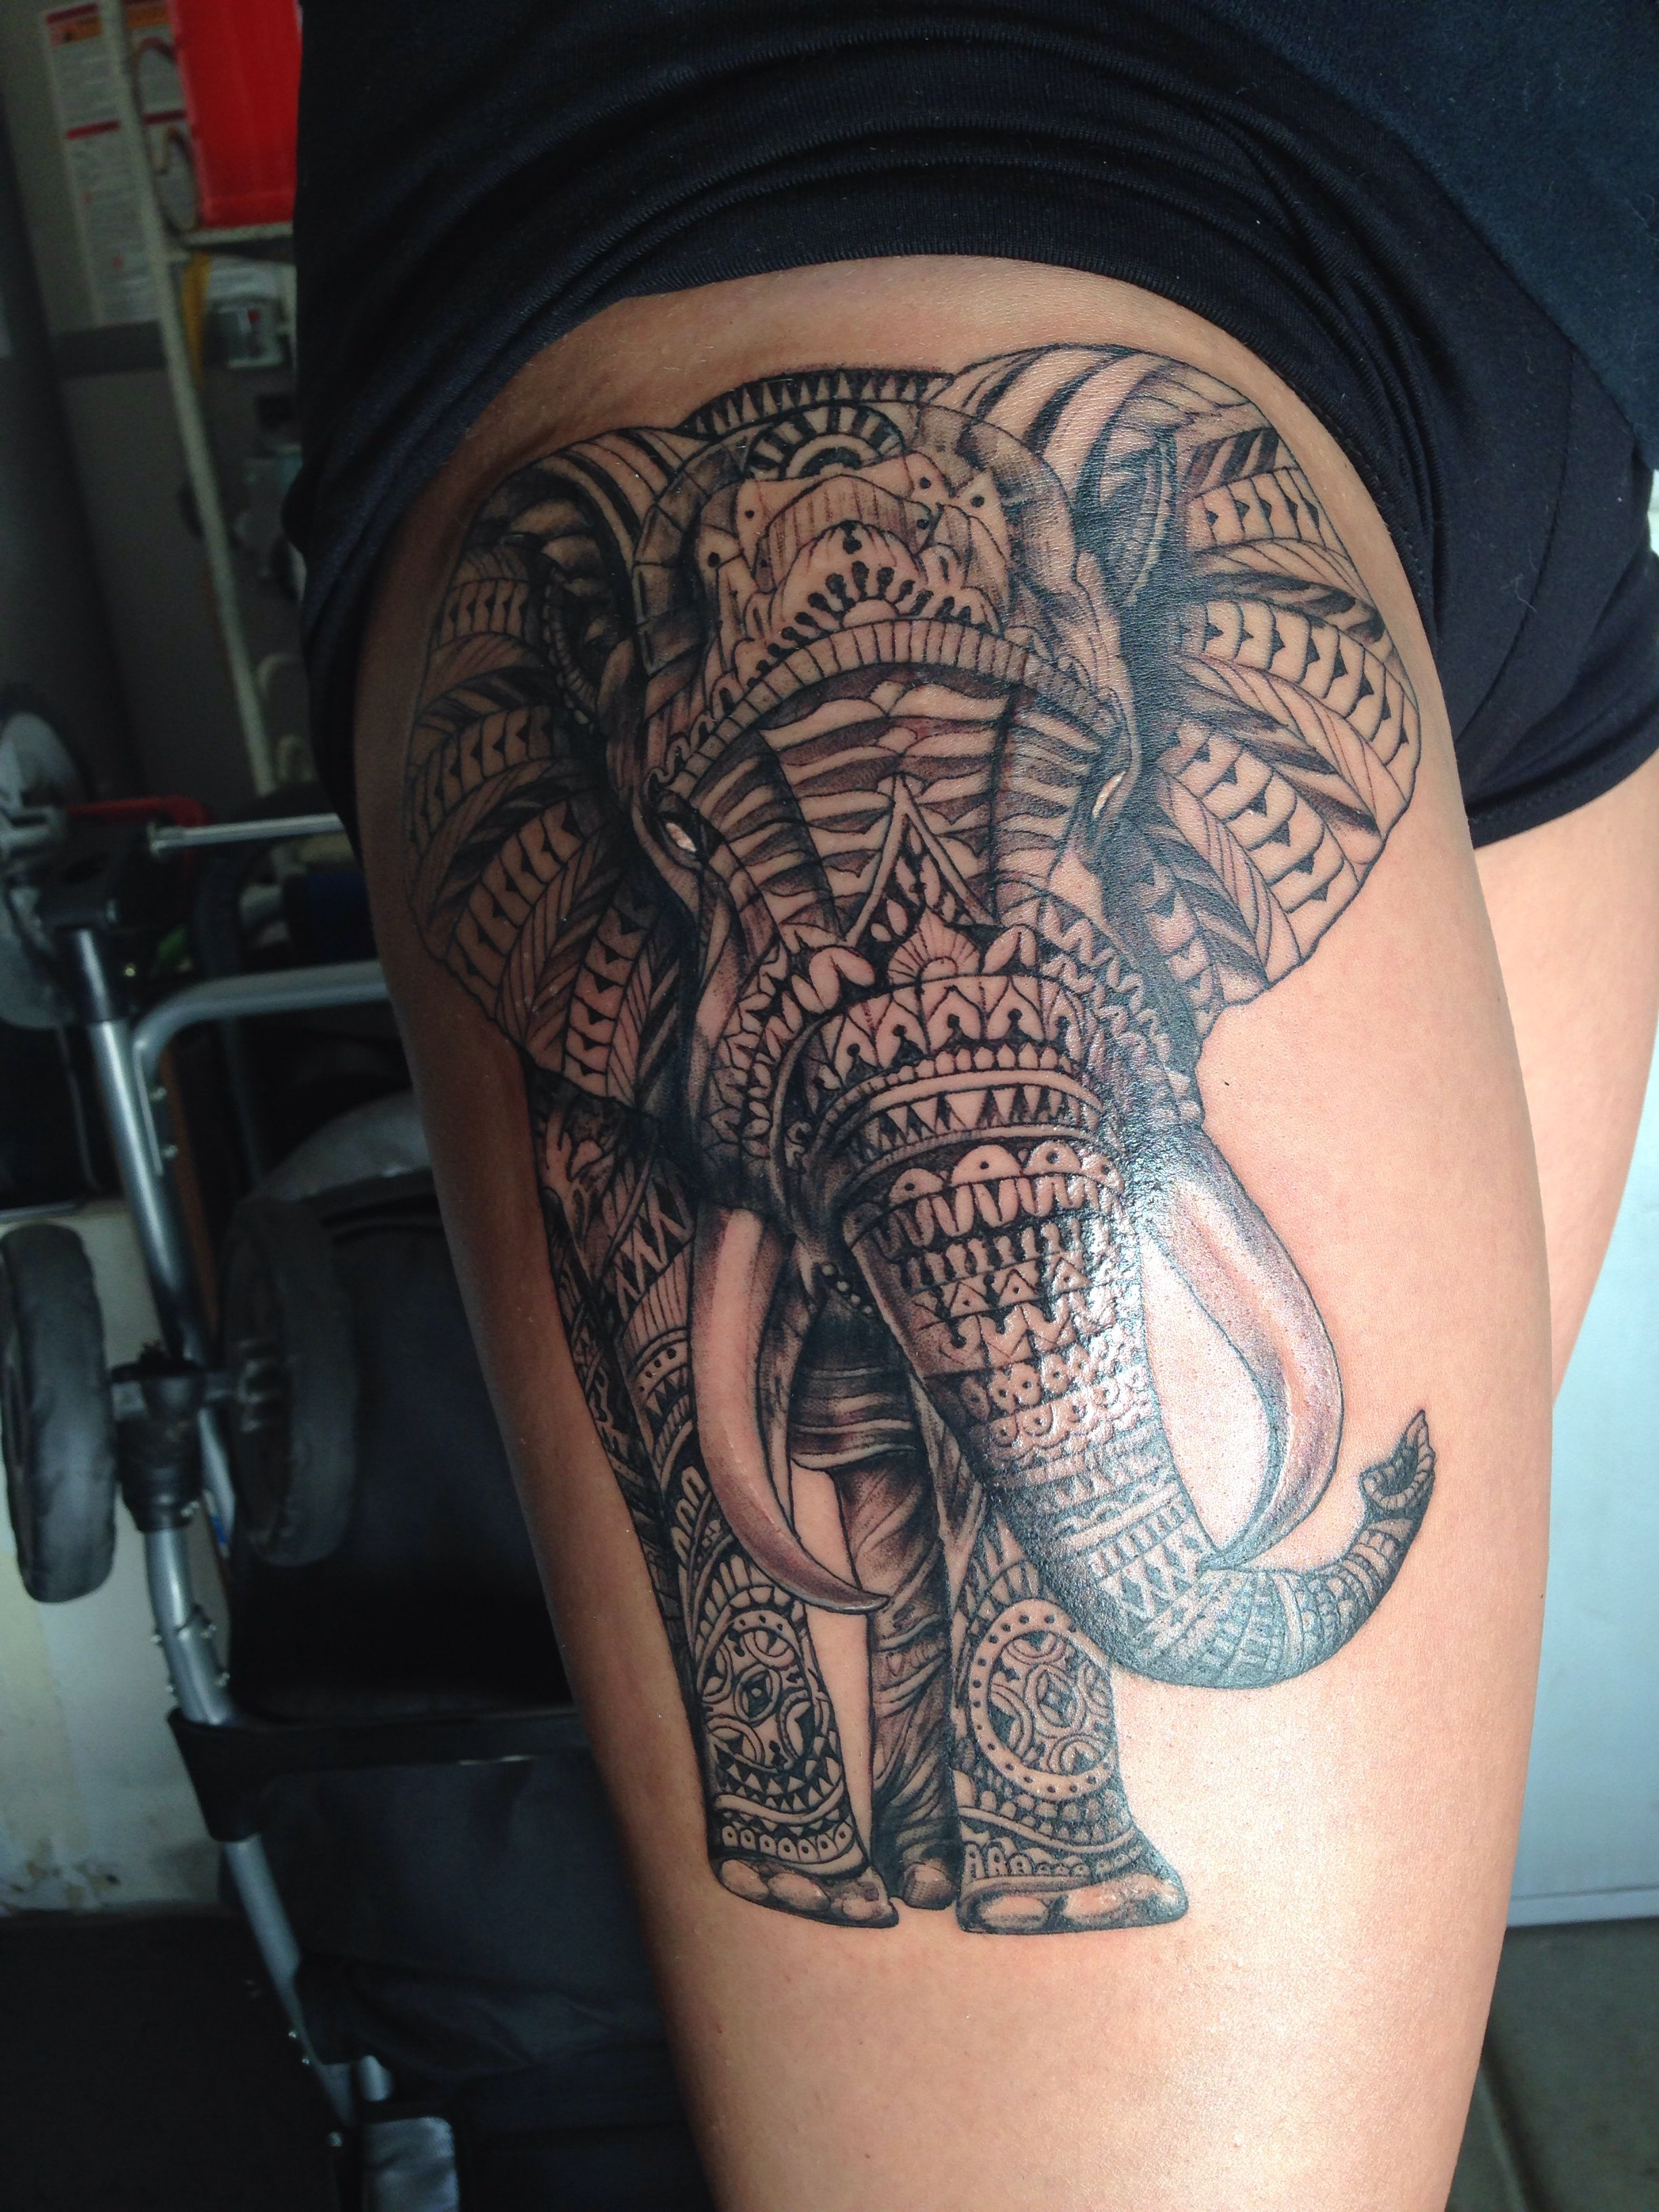 Love this but would want it on the side of my hip and thigh, not the front of my thigh